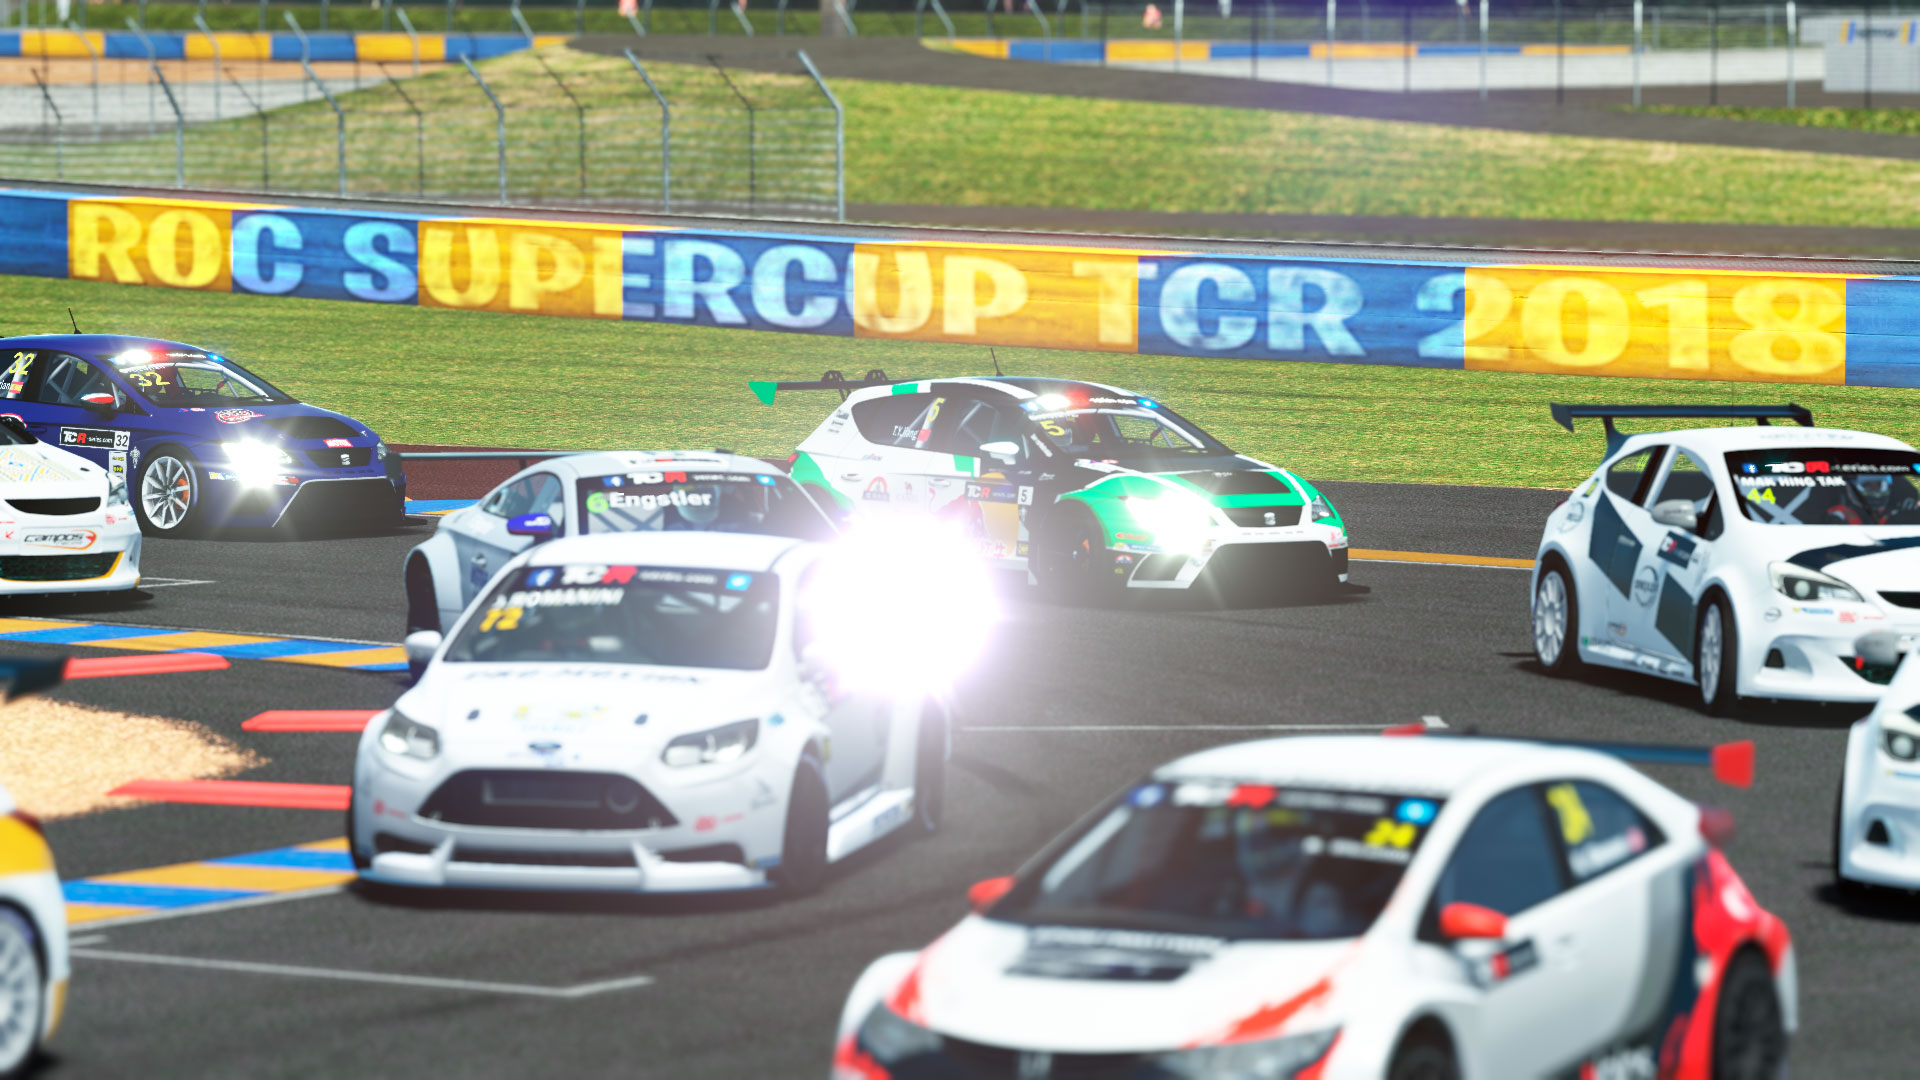 Atlanta (6/10) ROC SuperCup TCR Series